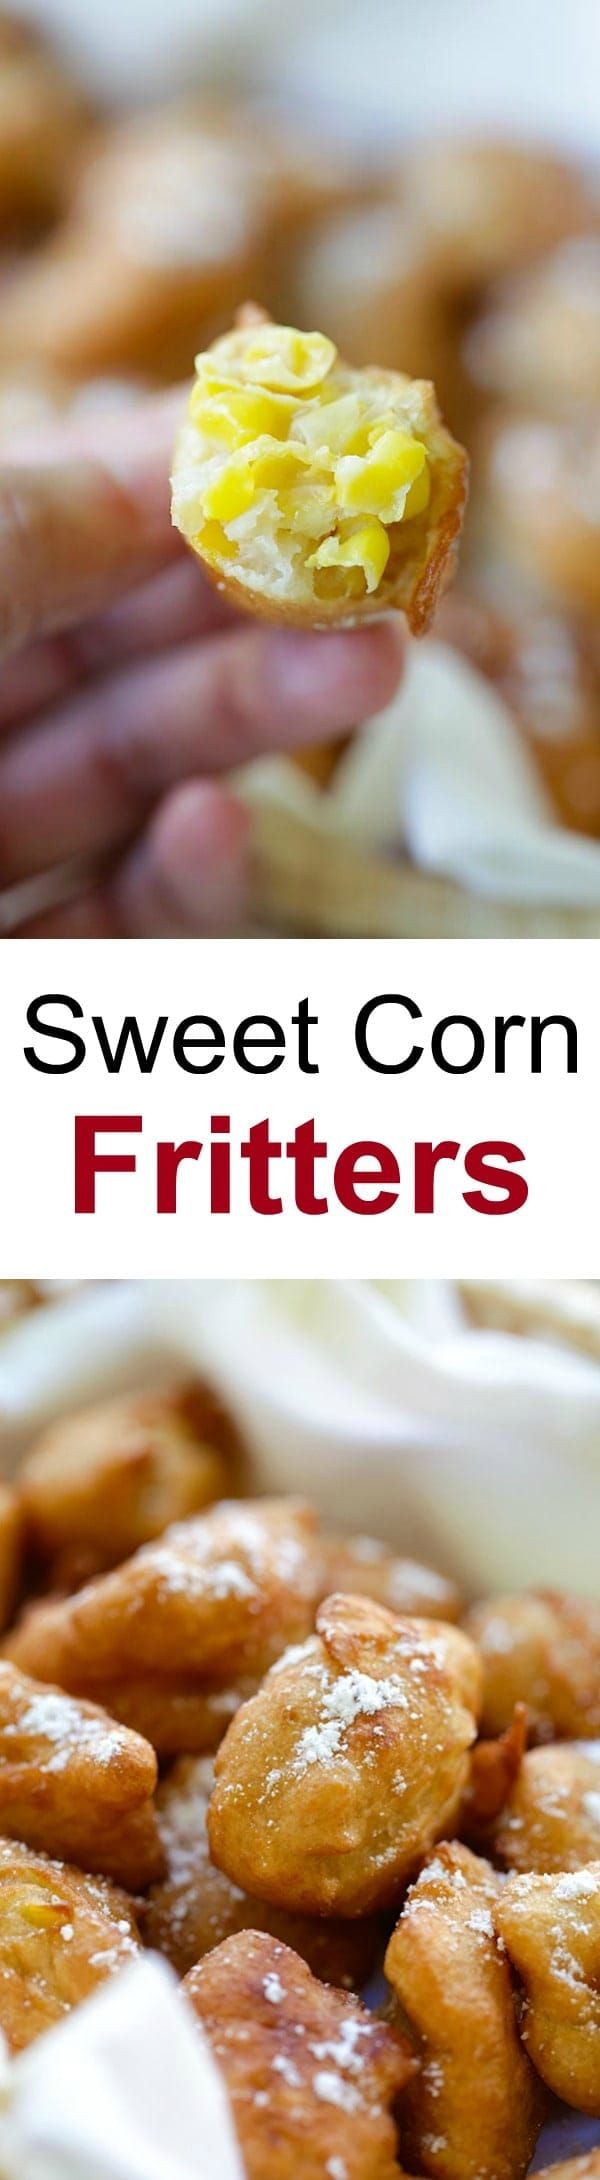 25+ Cream Corn Fritters ideas on Pinterest | Recipe for corn fritters ...